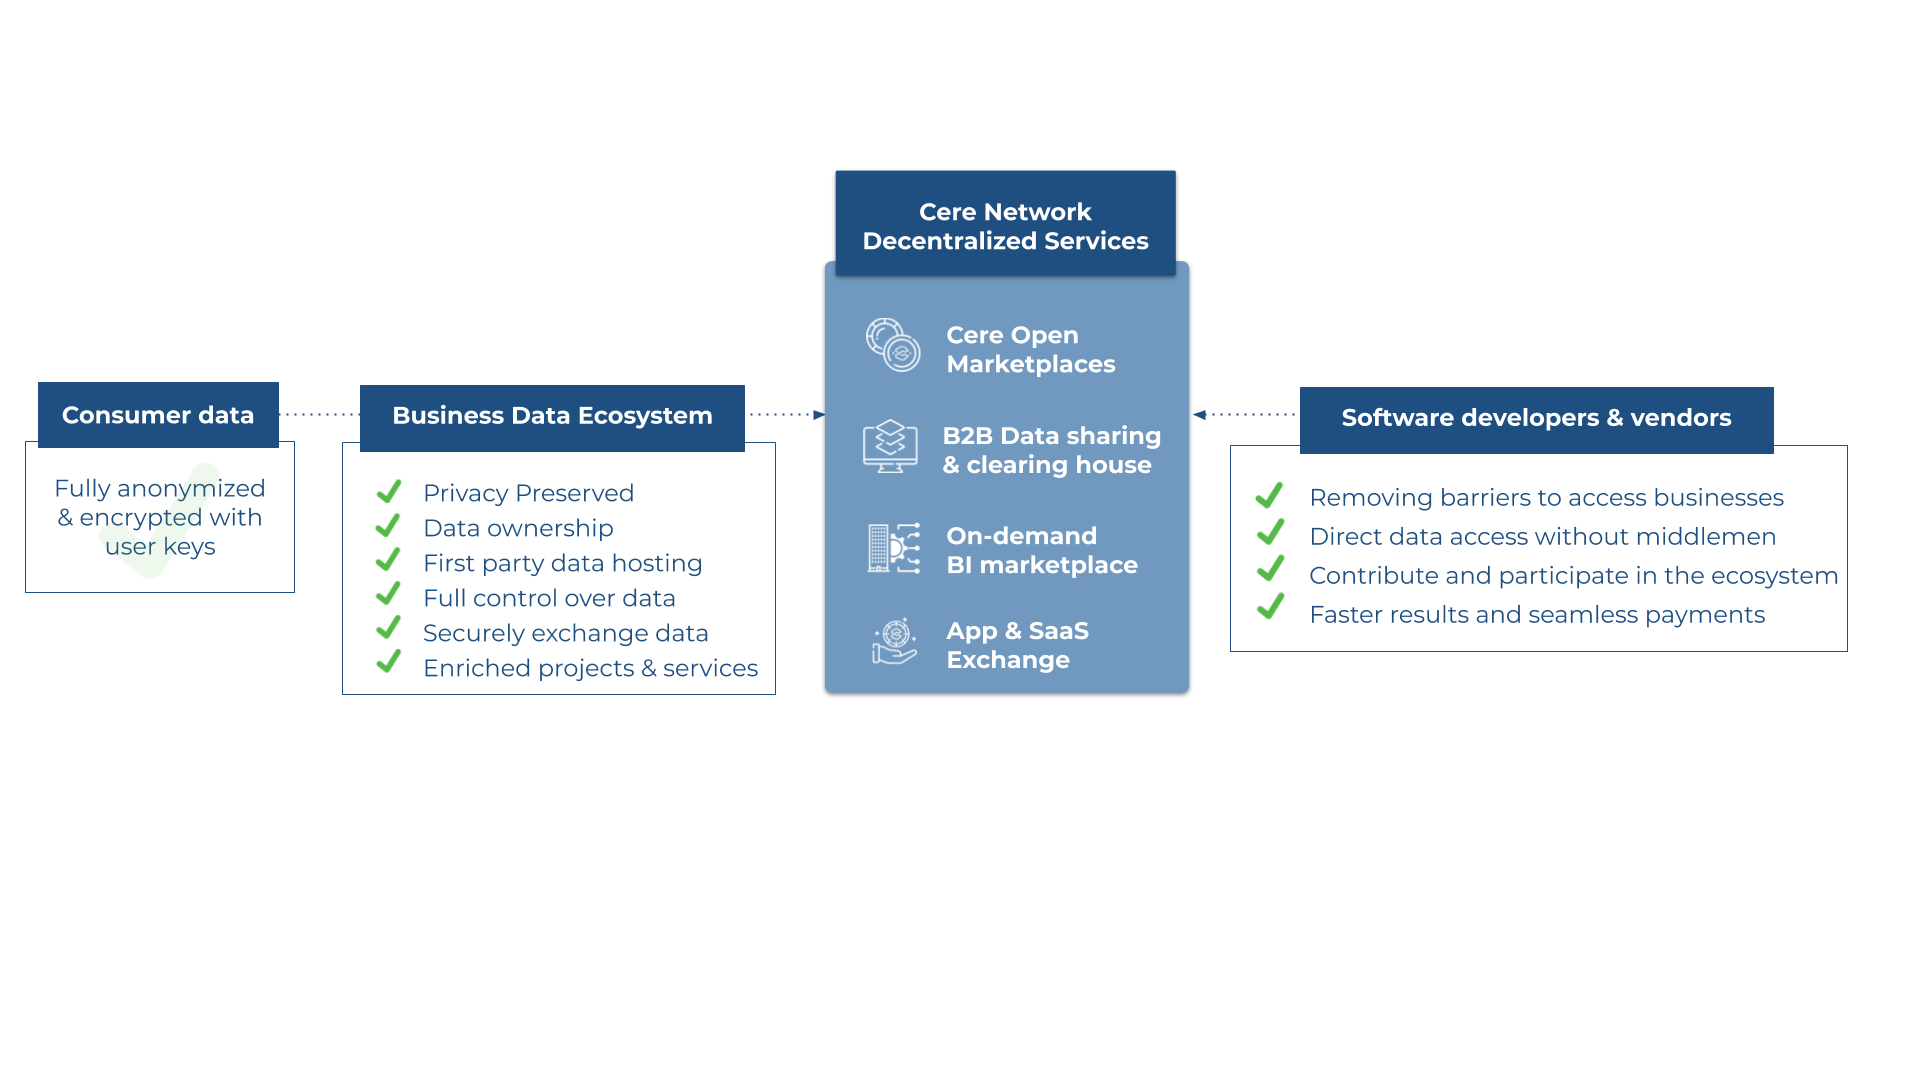 The Cere DDN (Decentralized Data Network)